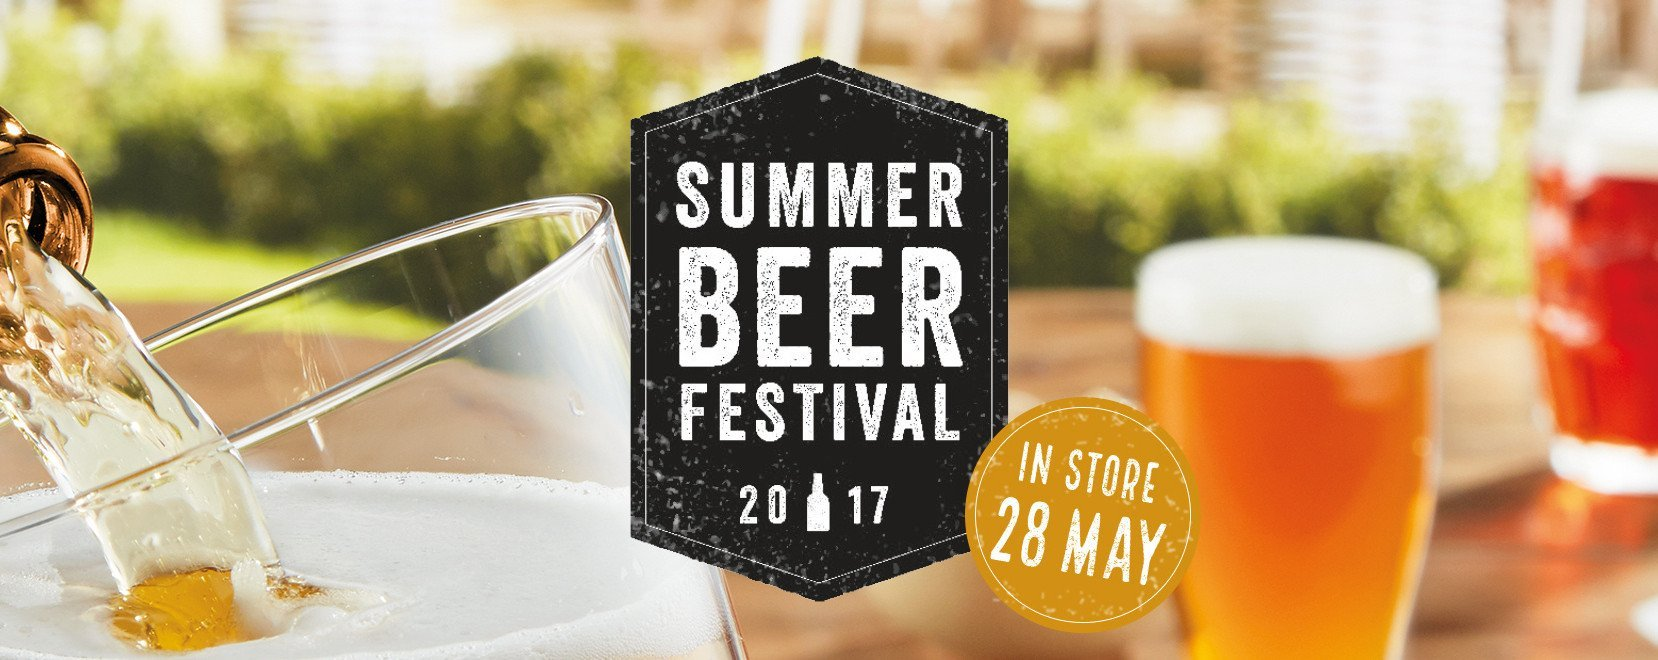 ritual alechemy pour pint schooner pale ale on table brewing brewery aldi summer beer festival